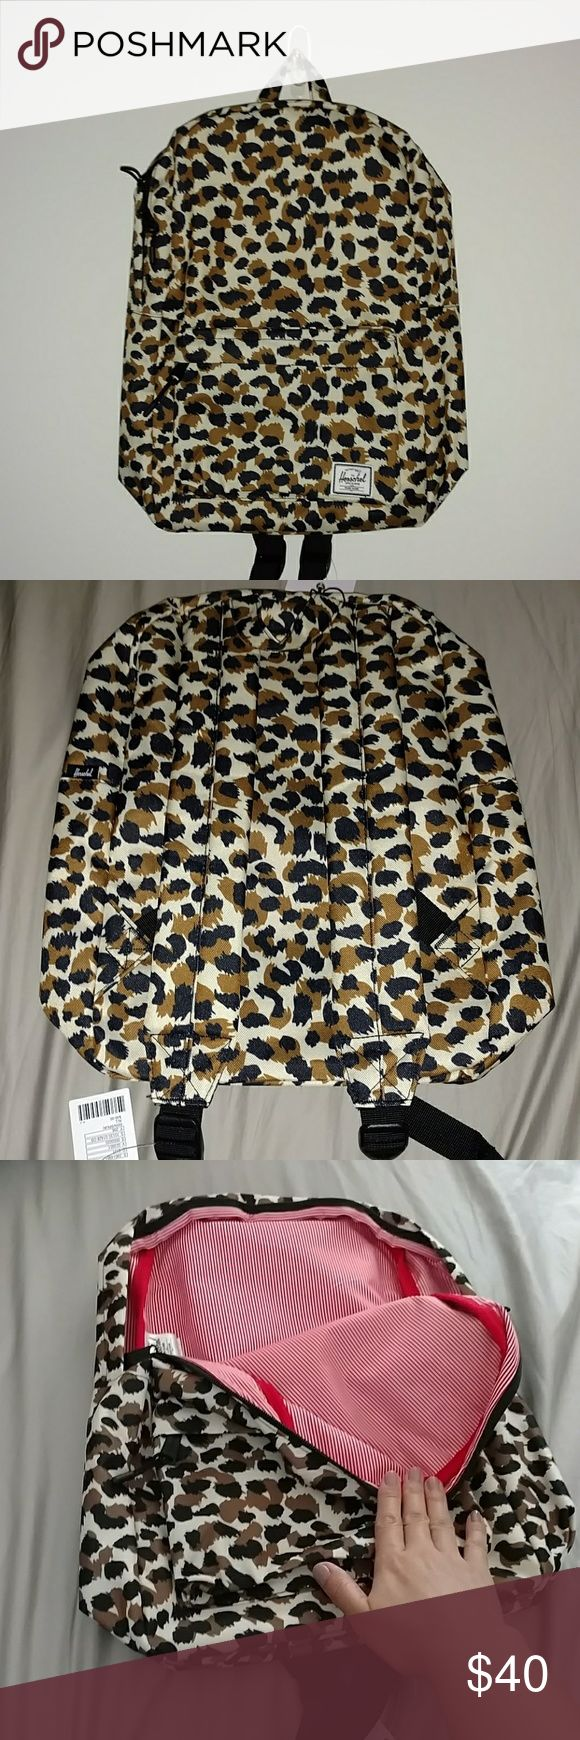 """Herschel Leopard Classic Mid-Volume Backpack This bookbag is from Herschel. It's brand new with tags. Bought, then changed mind about it, and went with all black. 16.5"""" H x 11"""" W x 4.75"""" D. 18L. Herschel Supply Company Bags Backpacks"""